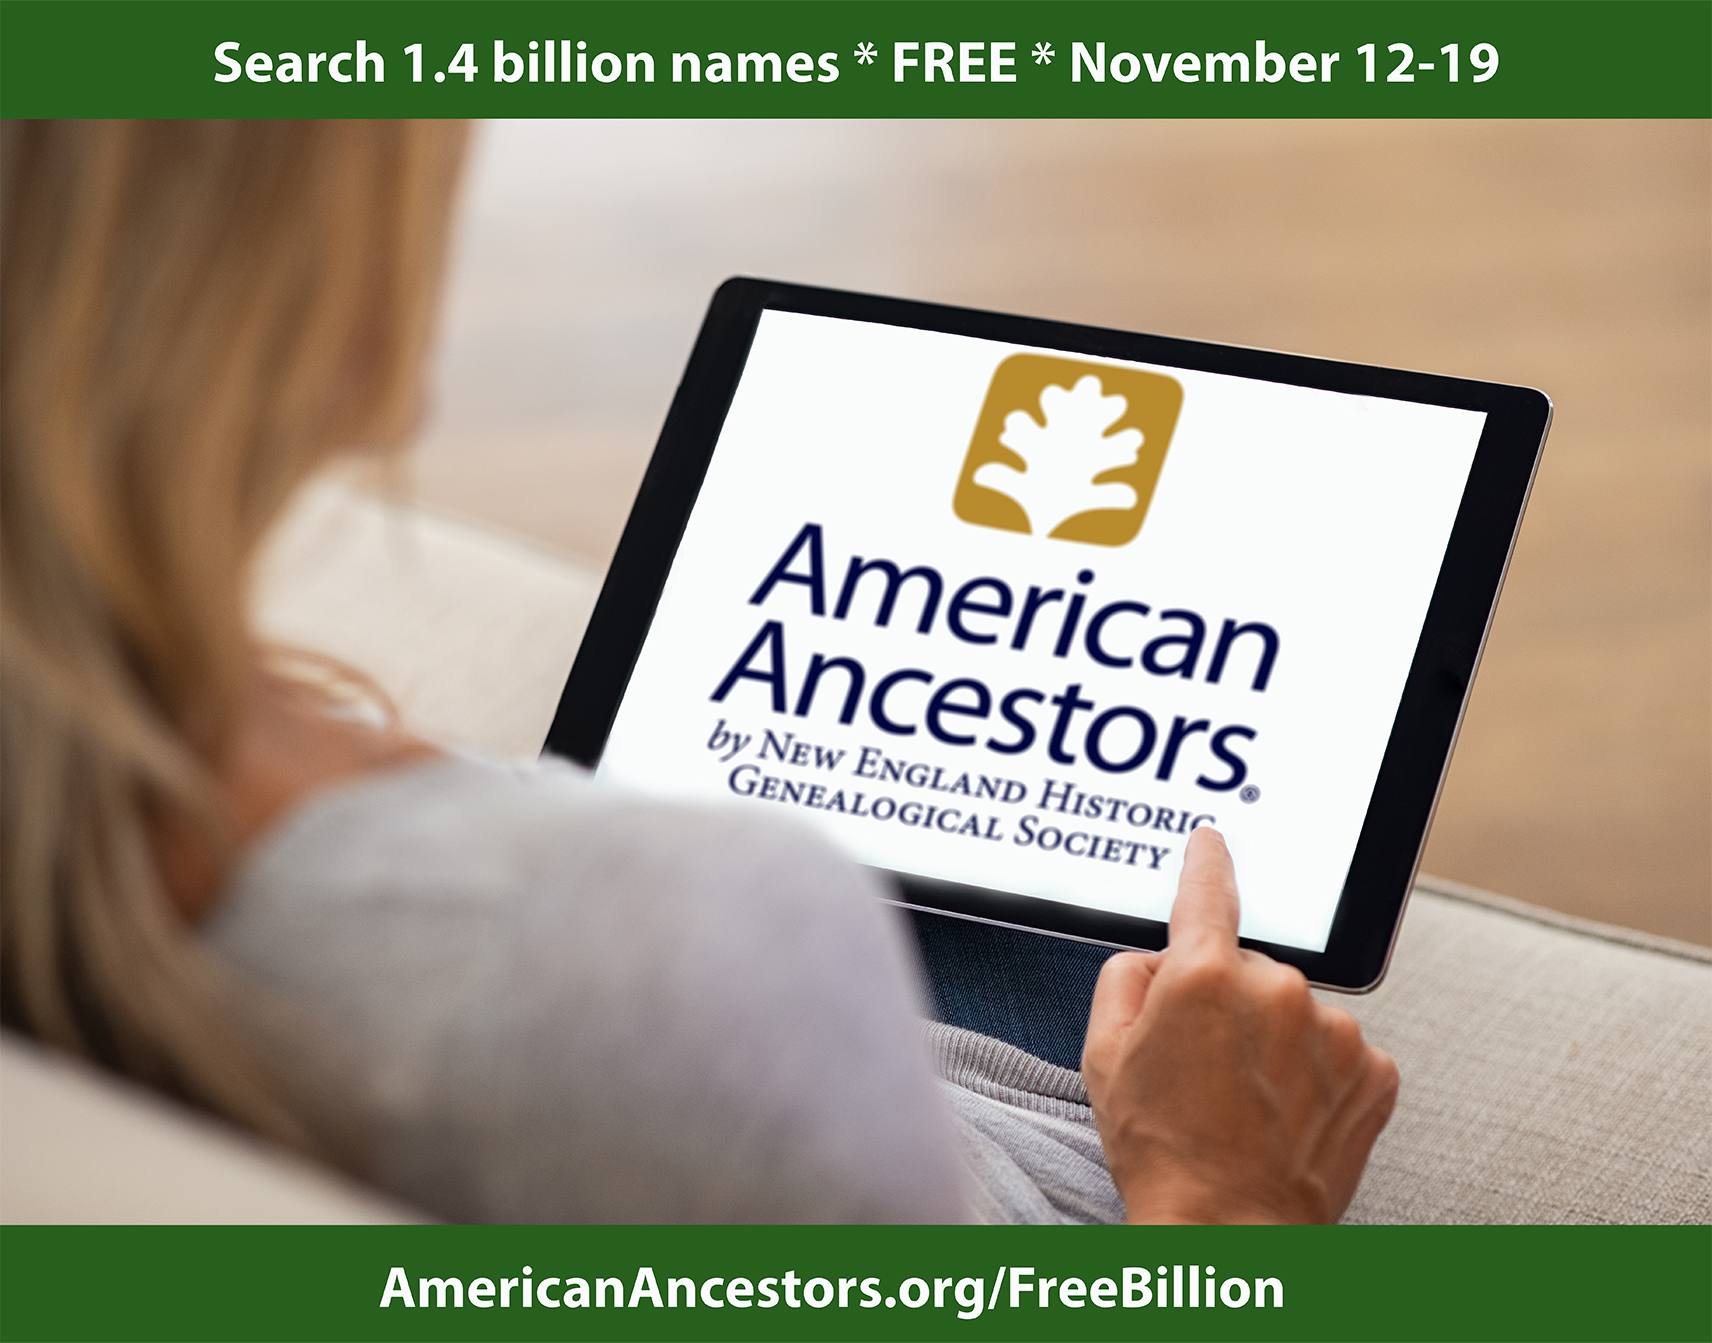 Search over 1.4 billion names FREE